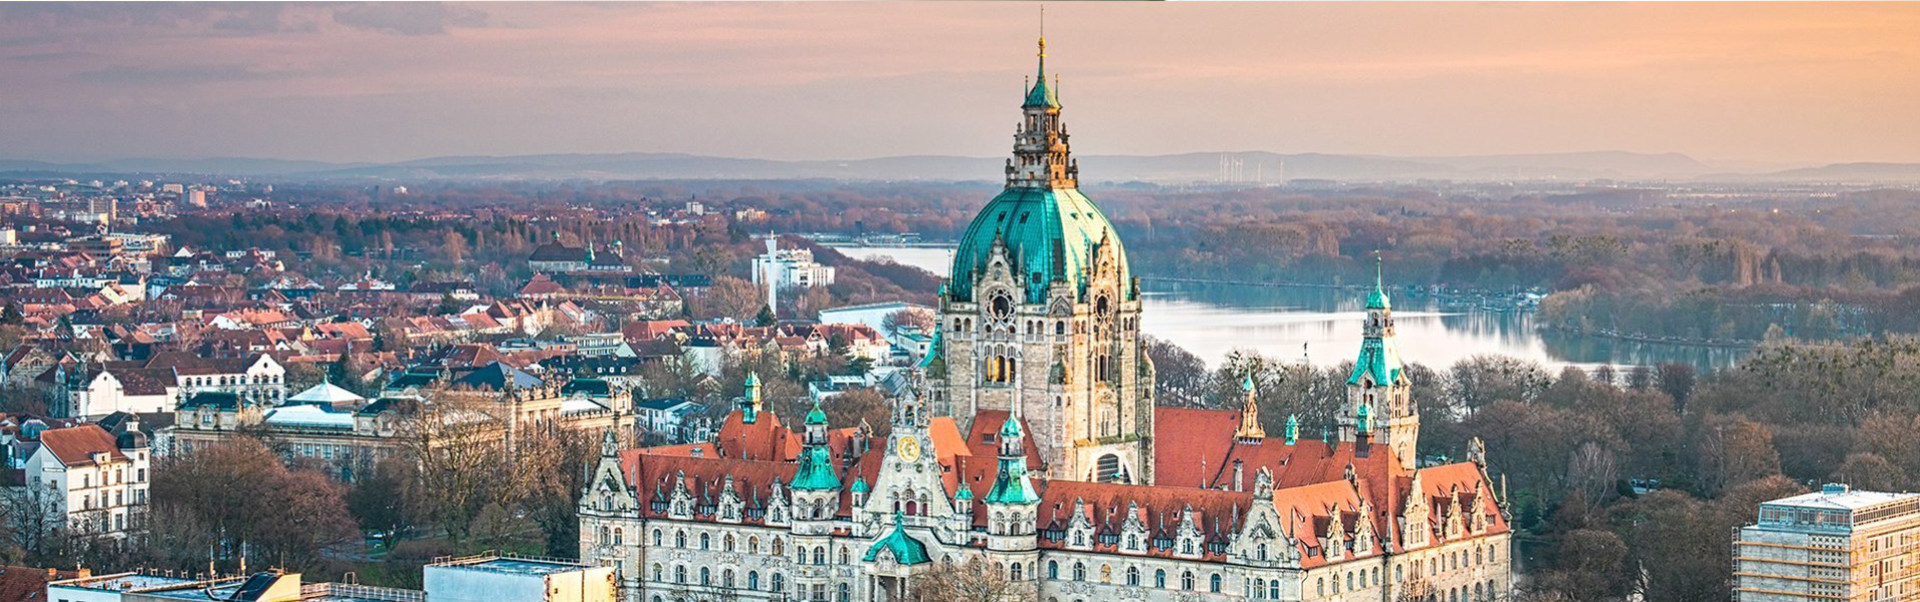 Hannover und Region Hannover